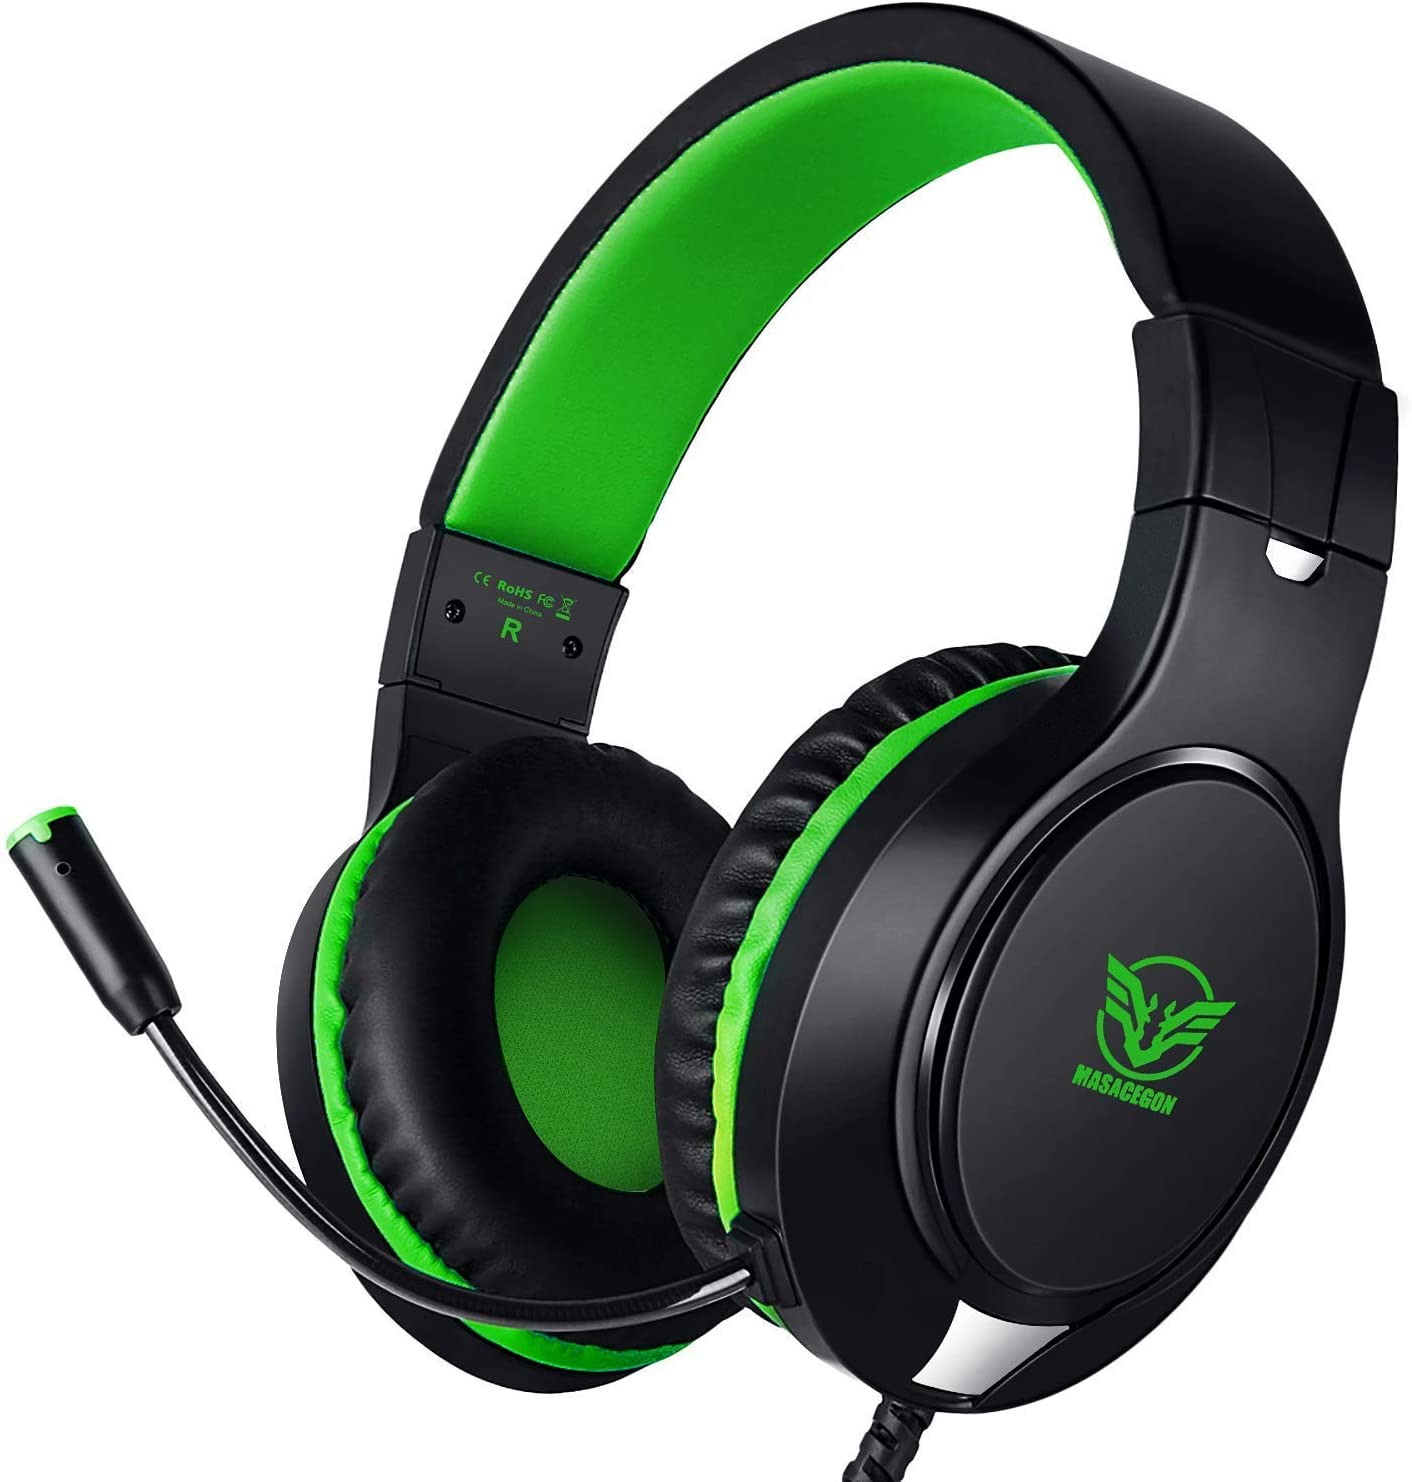 Gaming Headset for PS4, Xbox One, Nintendo Switch, Adjustable Earmuffs and Over-All Noise Isolation, Lightweight 3.5mm Wired Volume Control with Mic for Laptop PC